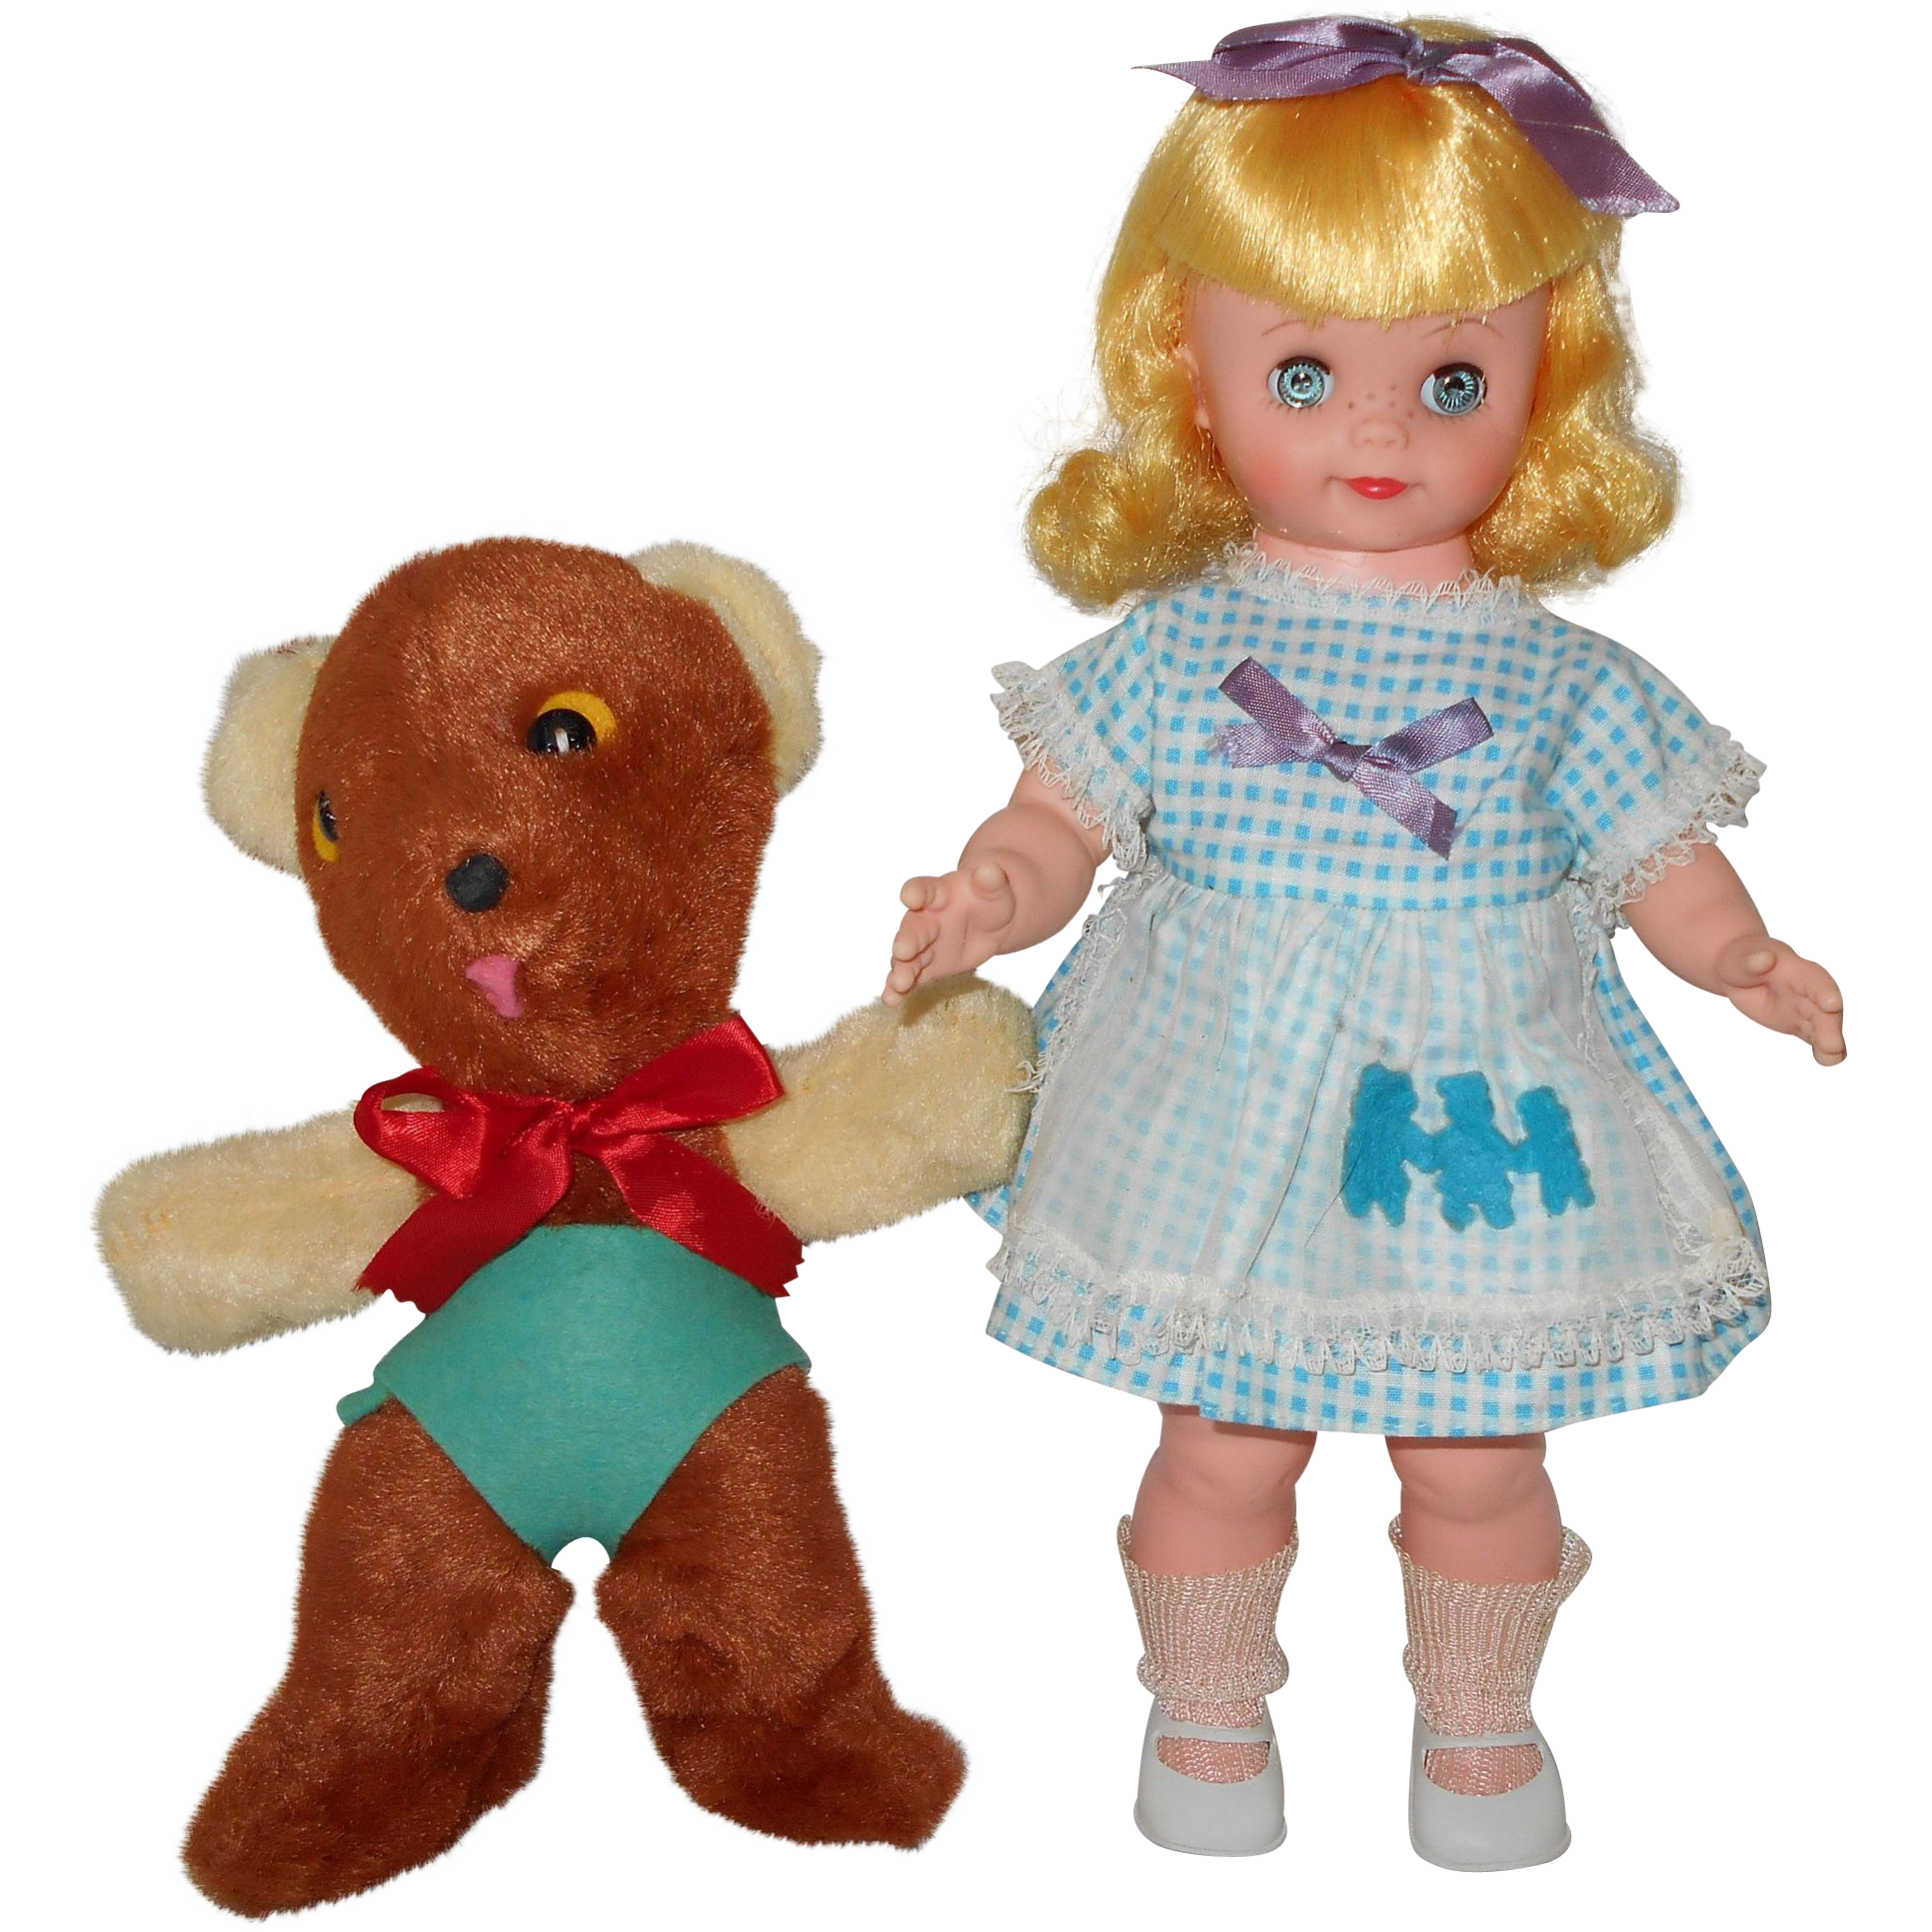 Vintage 1960s Allied Toy Goldilocks and Baby Bear Doll Set